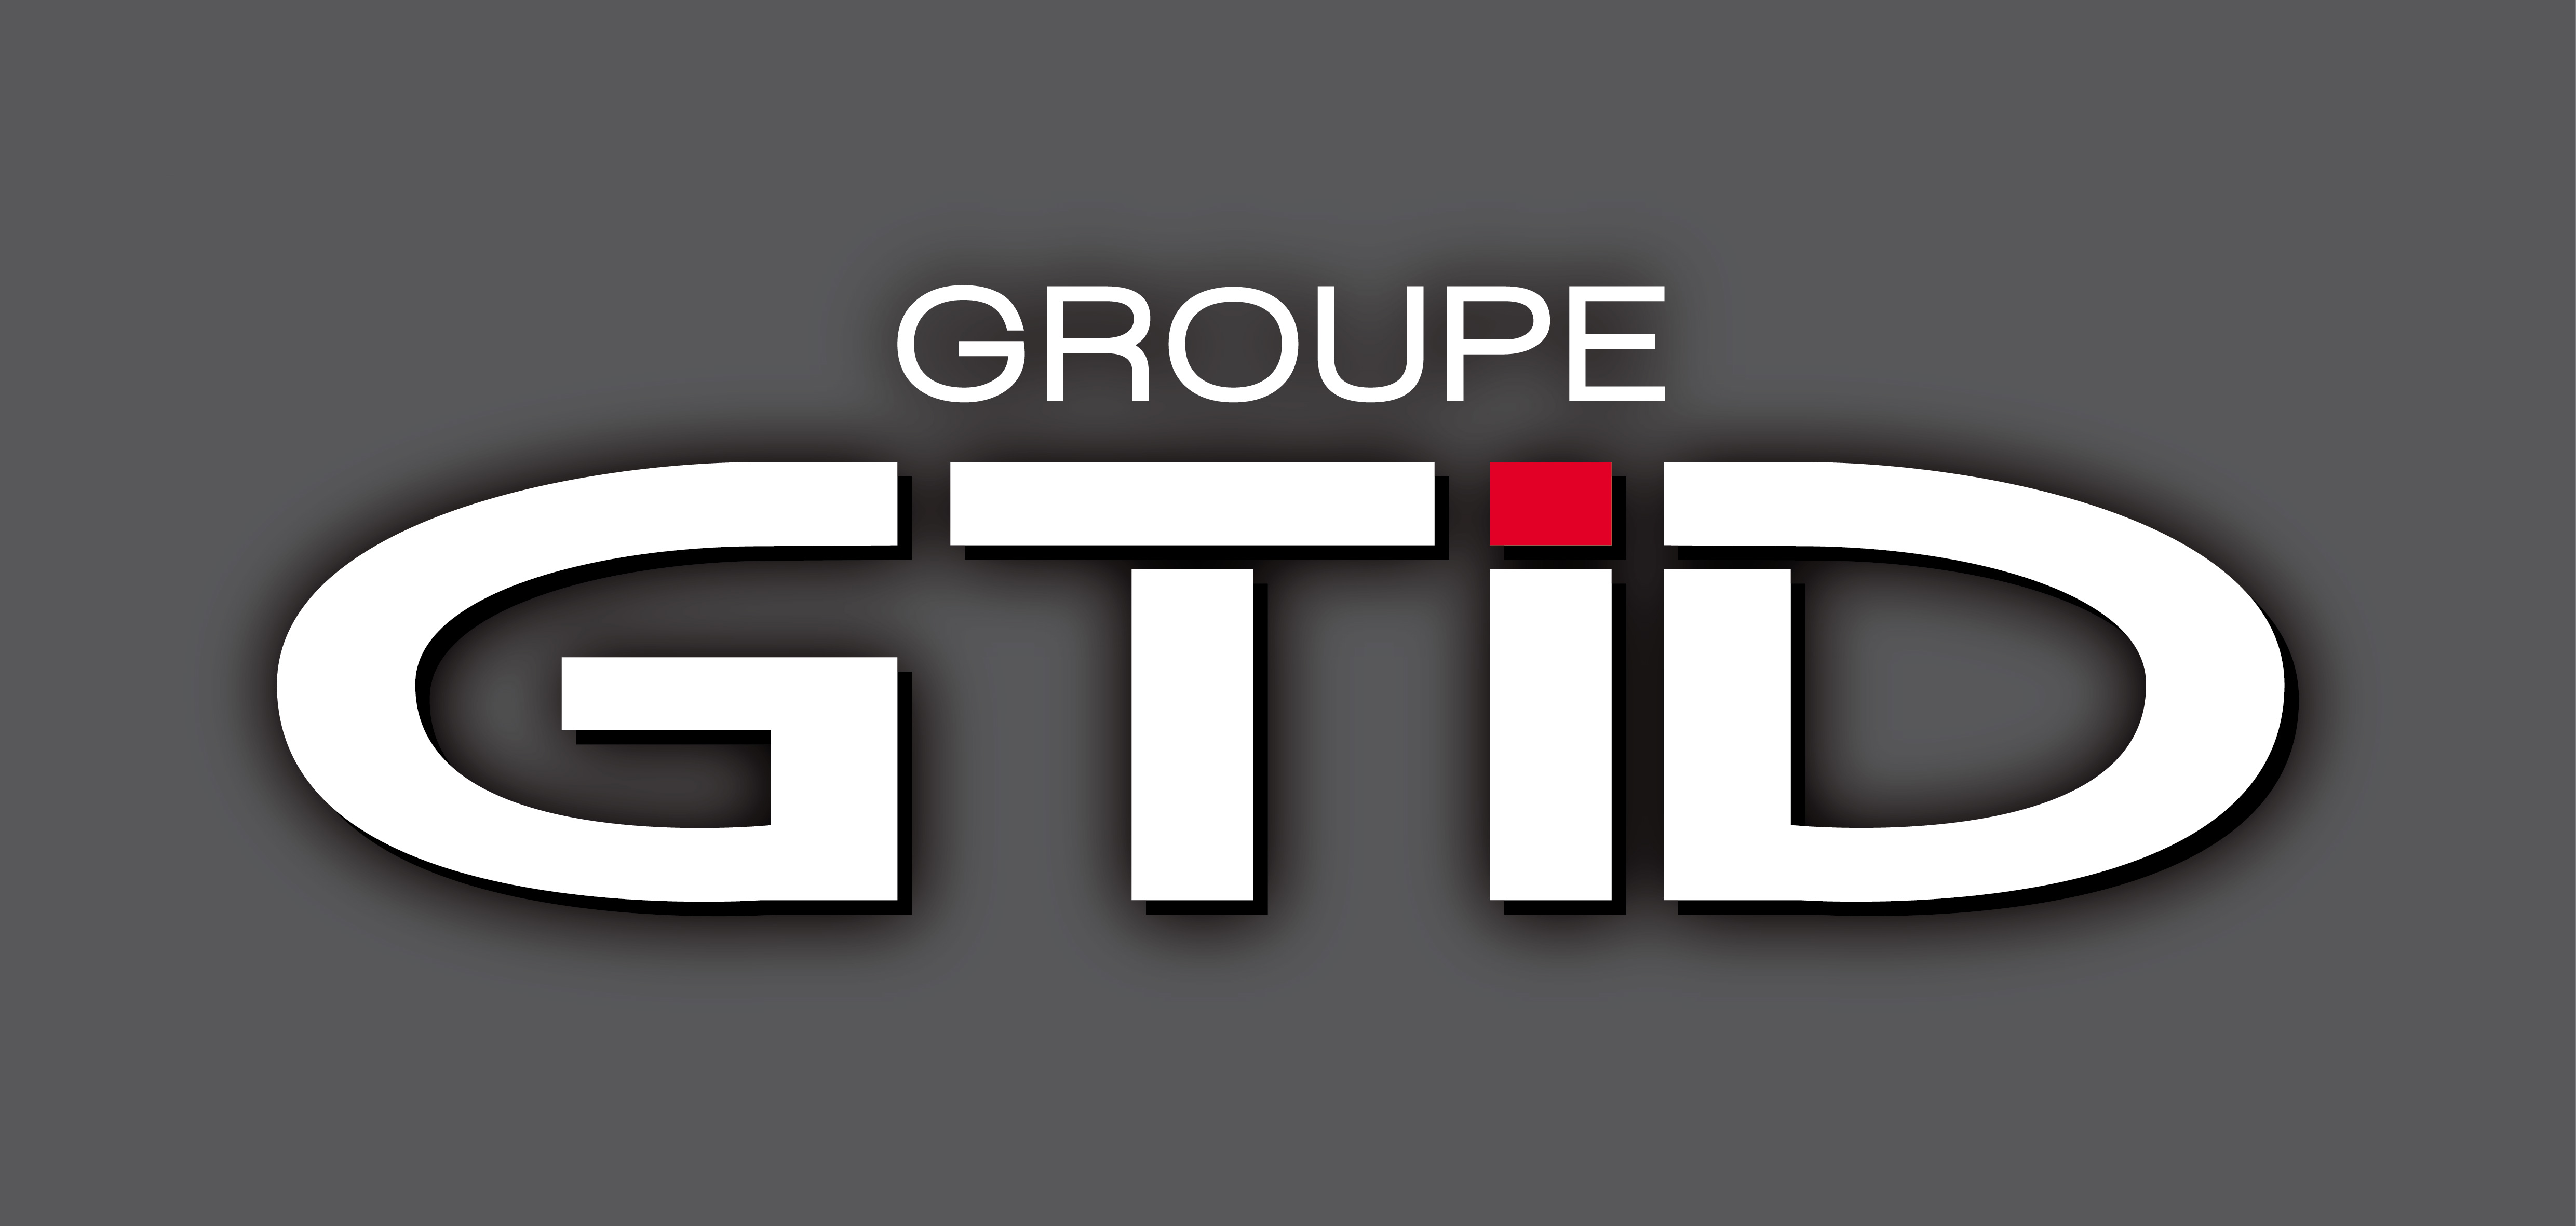 GROUPE GTID